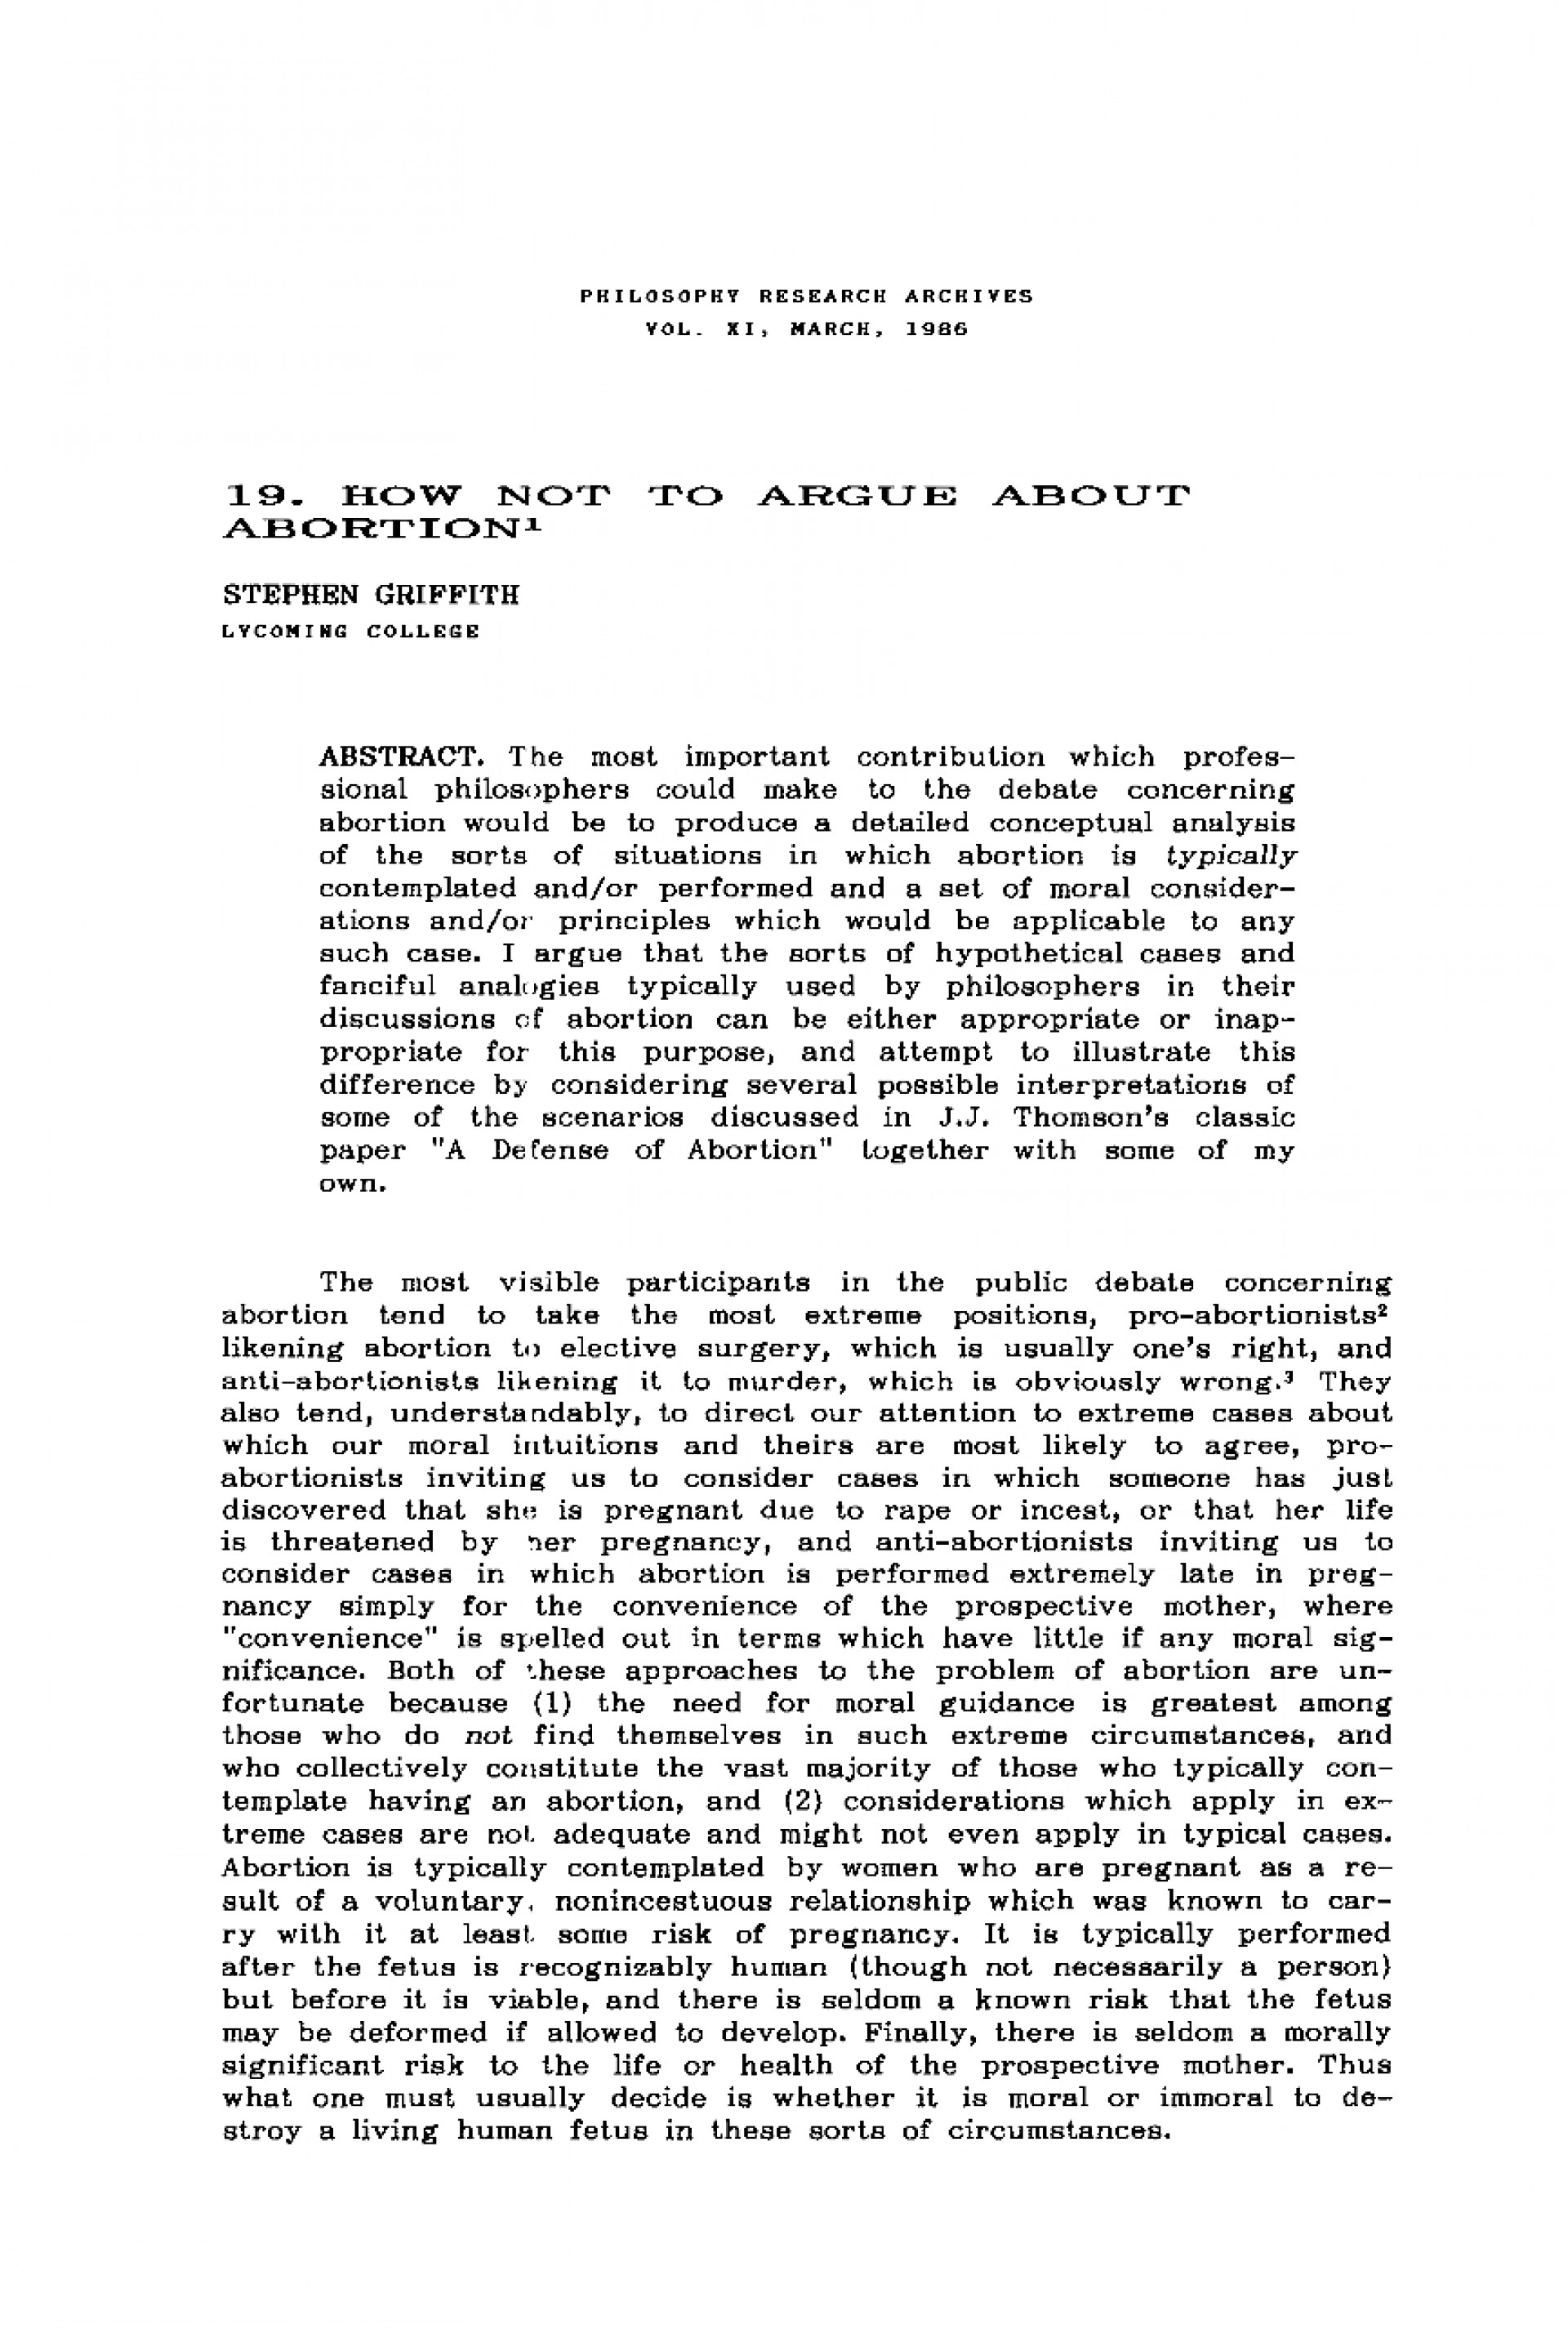 004 Abortion Research Paper Conclusion Uncategorized Pro Essay Why Is Wrong Argument On Argumentative Oracleboss Life Choice Unforgettable 1920